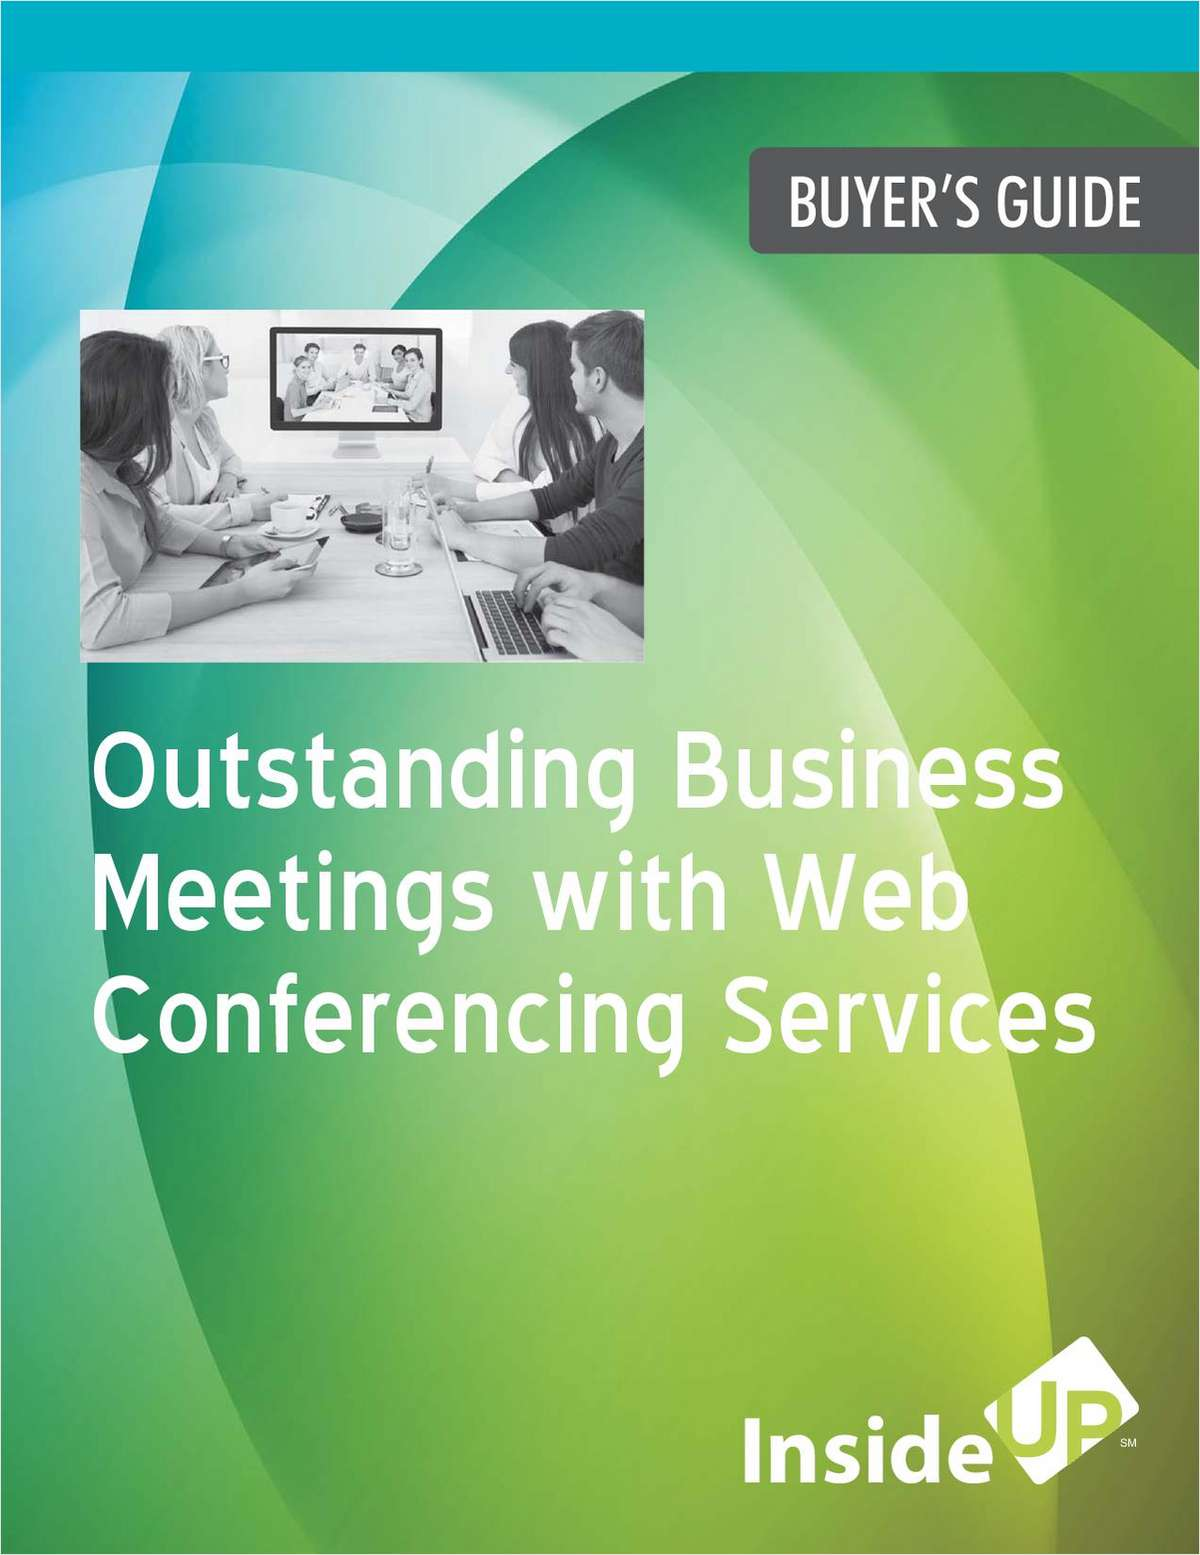 Outstanding Business Meetings with Web Conferencing Services